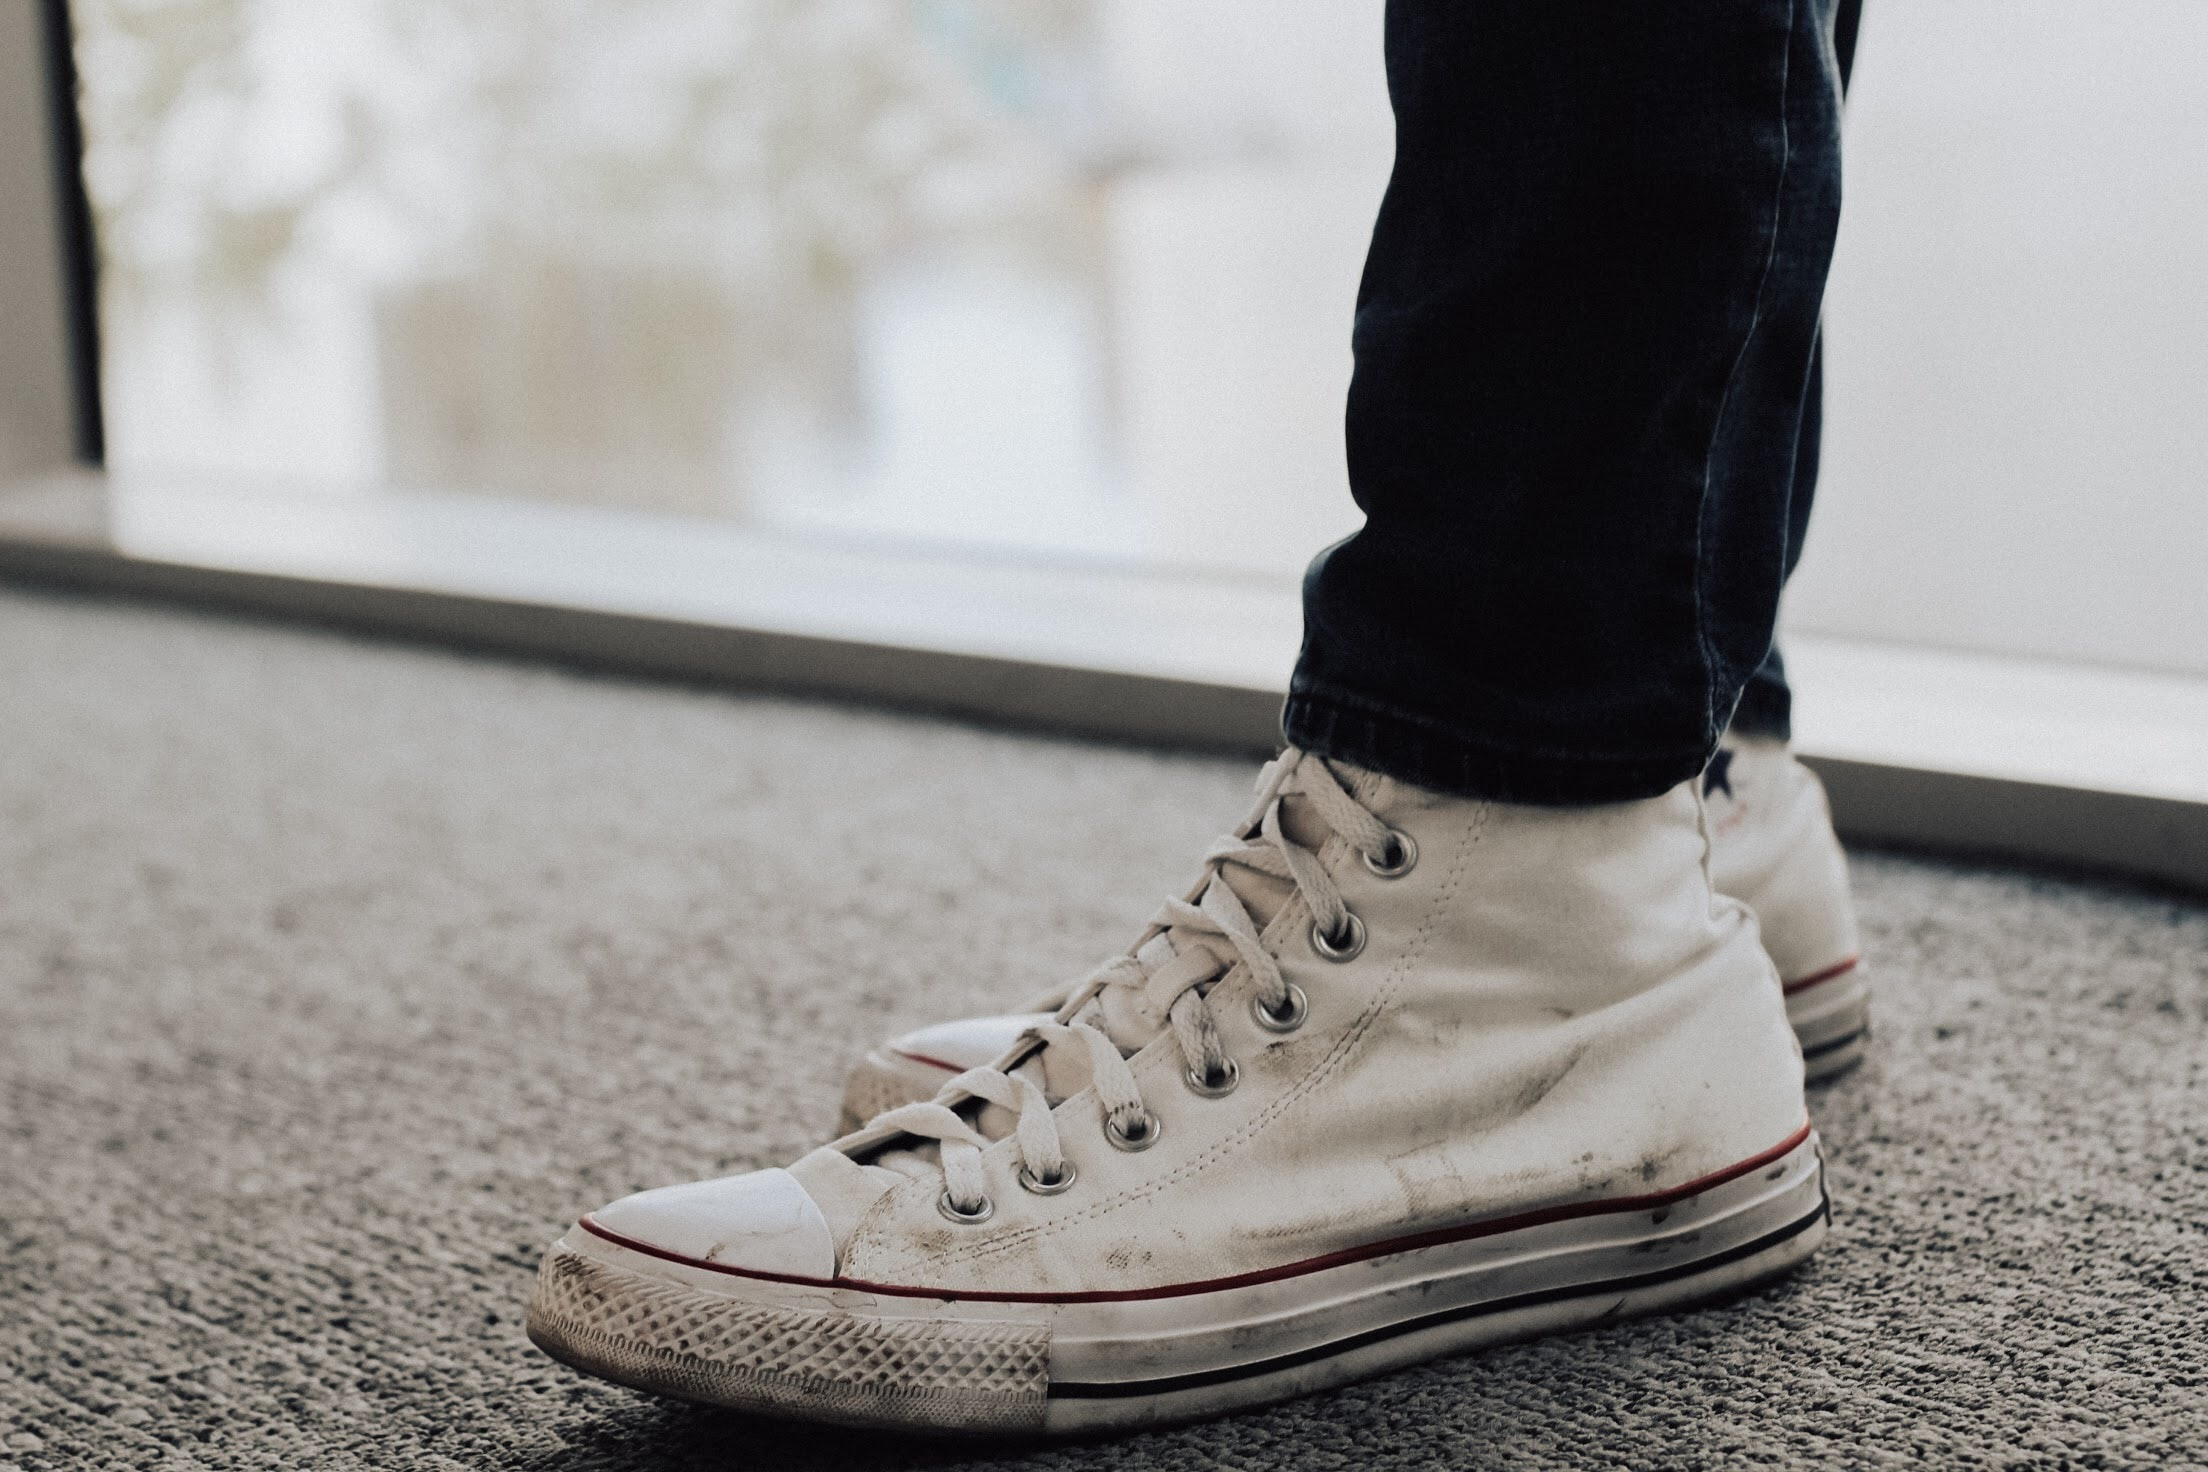 person wearing white high-top sneaker standing on gray carpet close-up photo